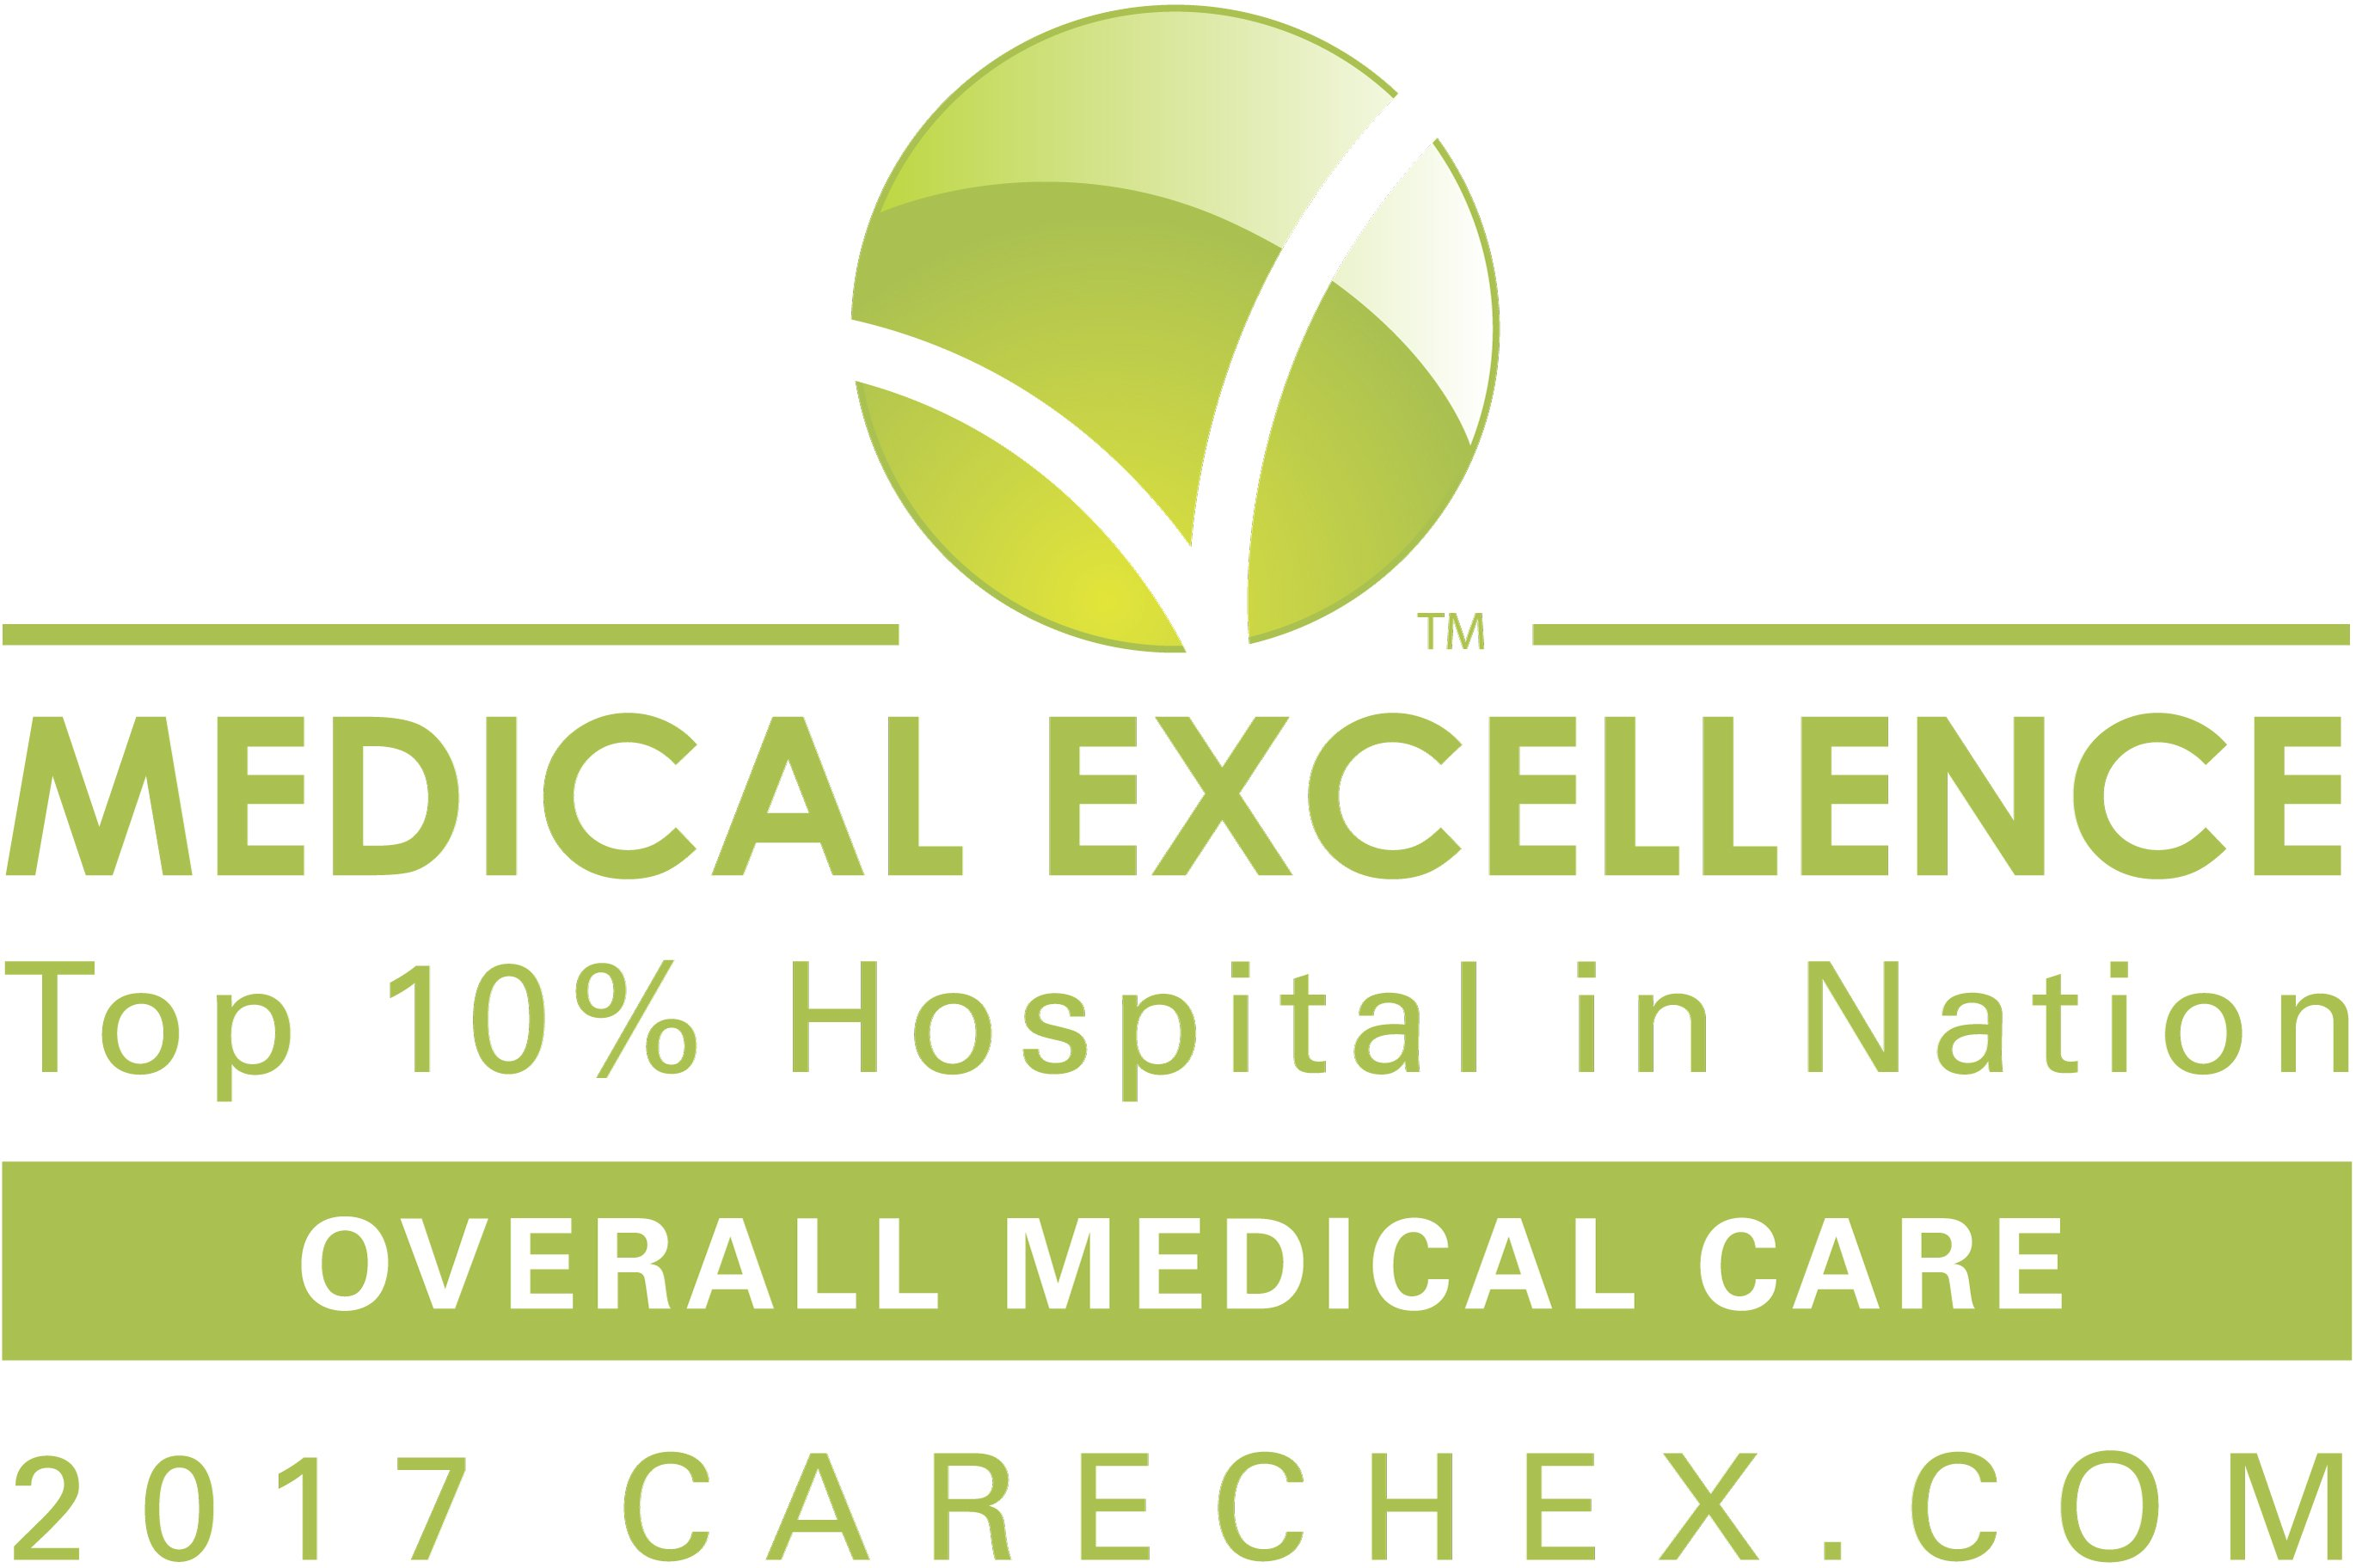 HSP Overall Medical Care